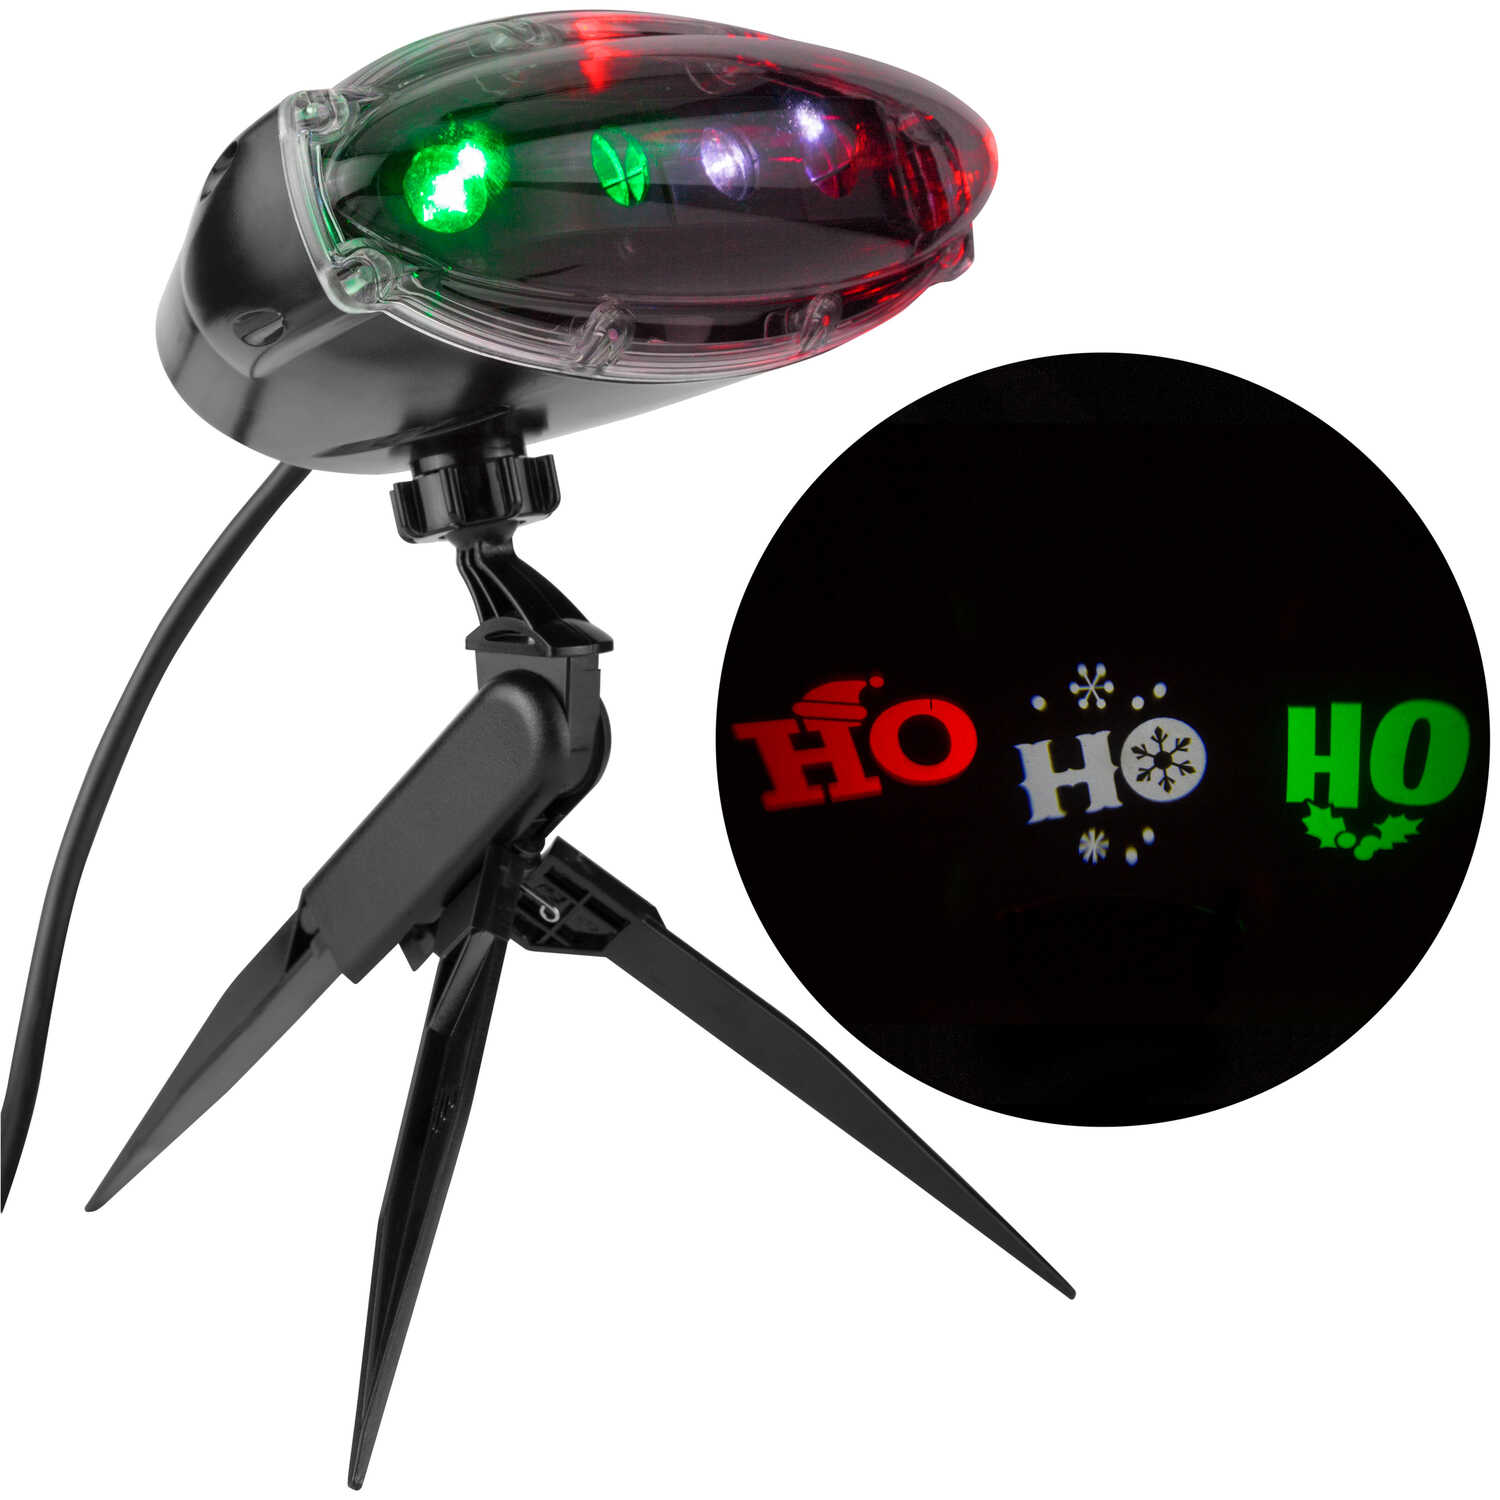 Gemmy  Ho Ho Ho  LED Projector  Plastic  1 pk Red/White/Green